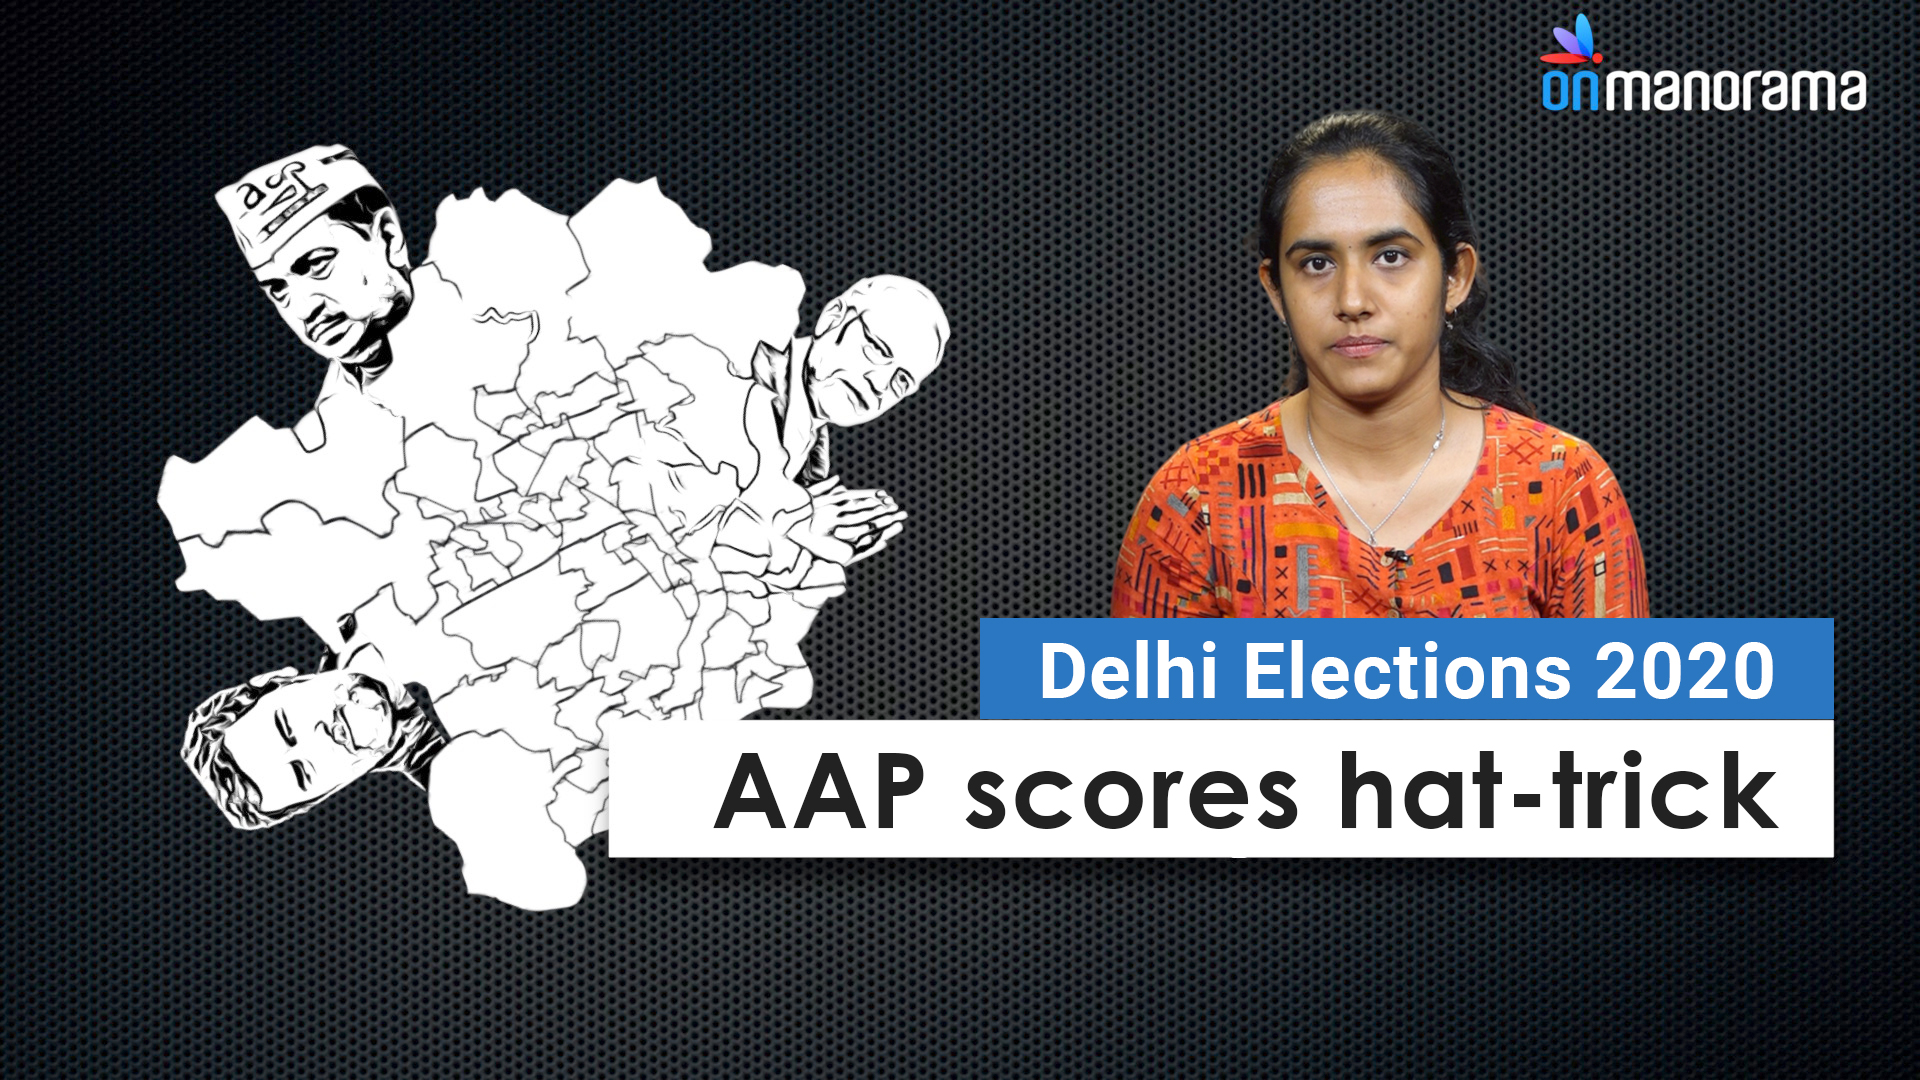 Podcast | AAP scores hat-trick, Congress draws blank again